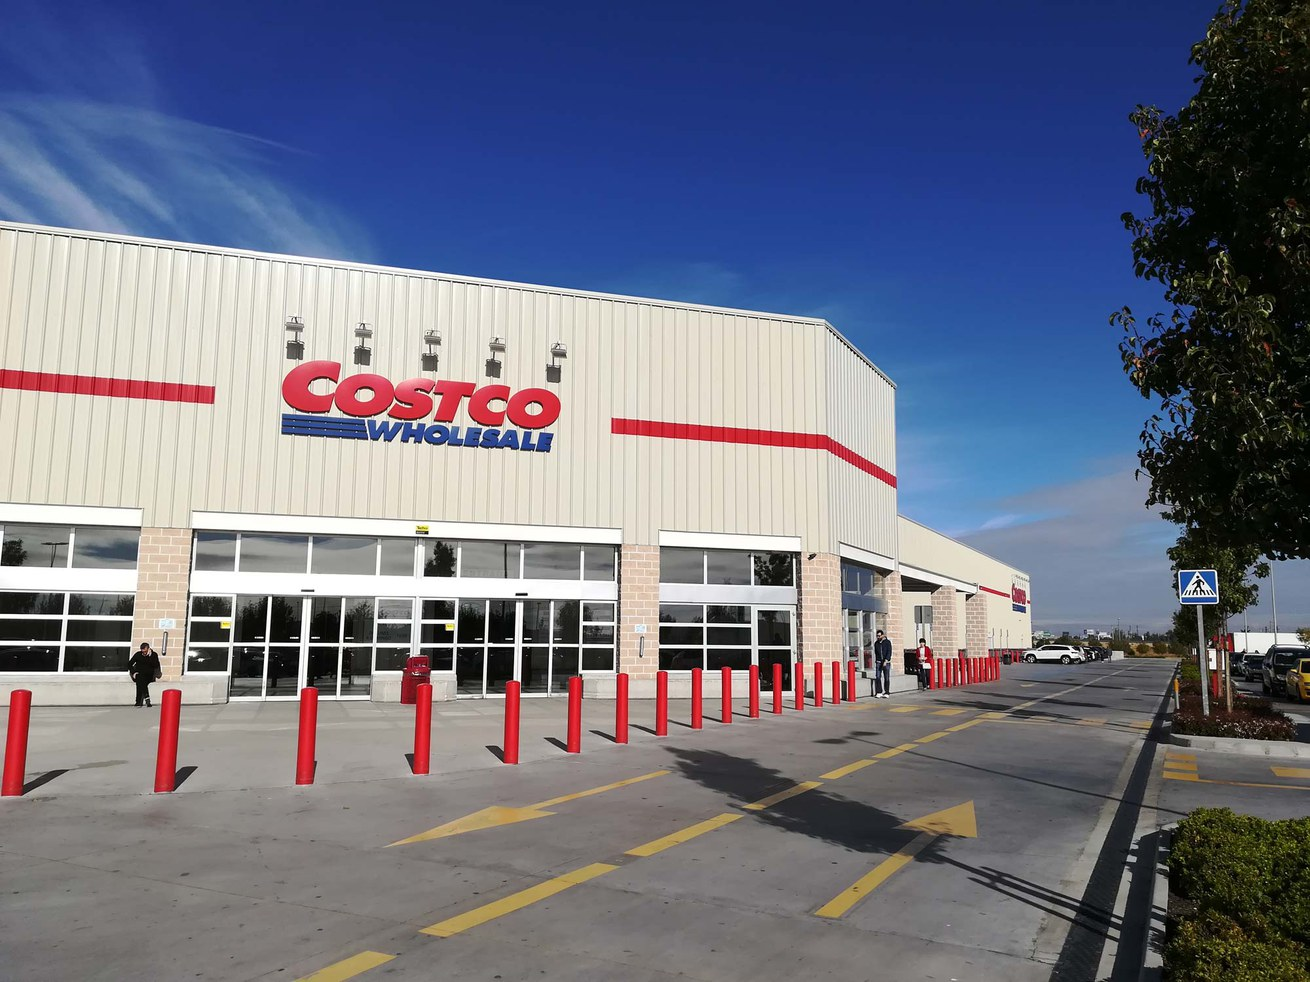 Costco Wholesale opts for ULMA's Trench Drains